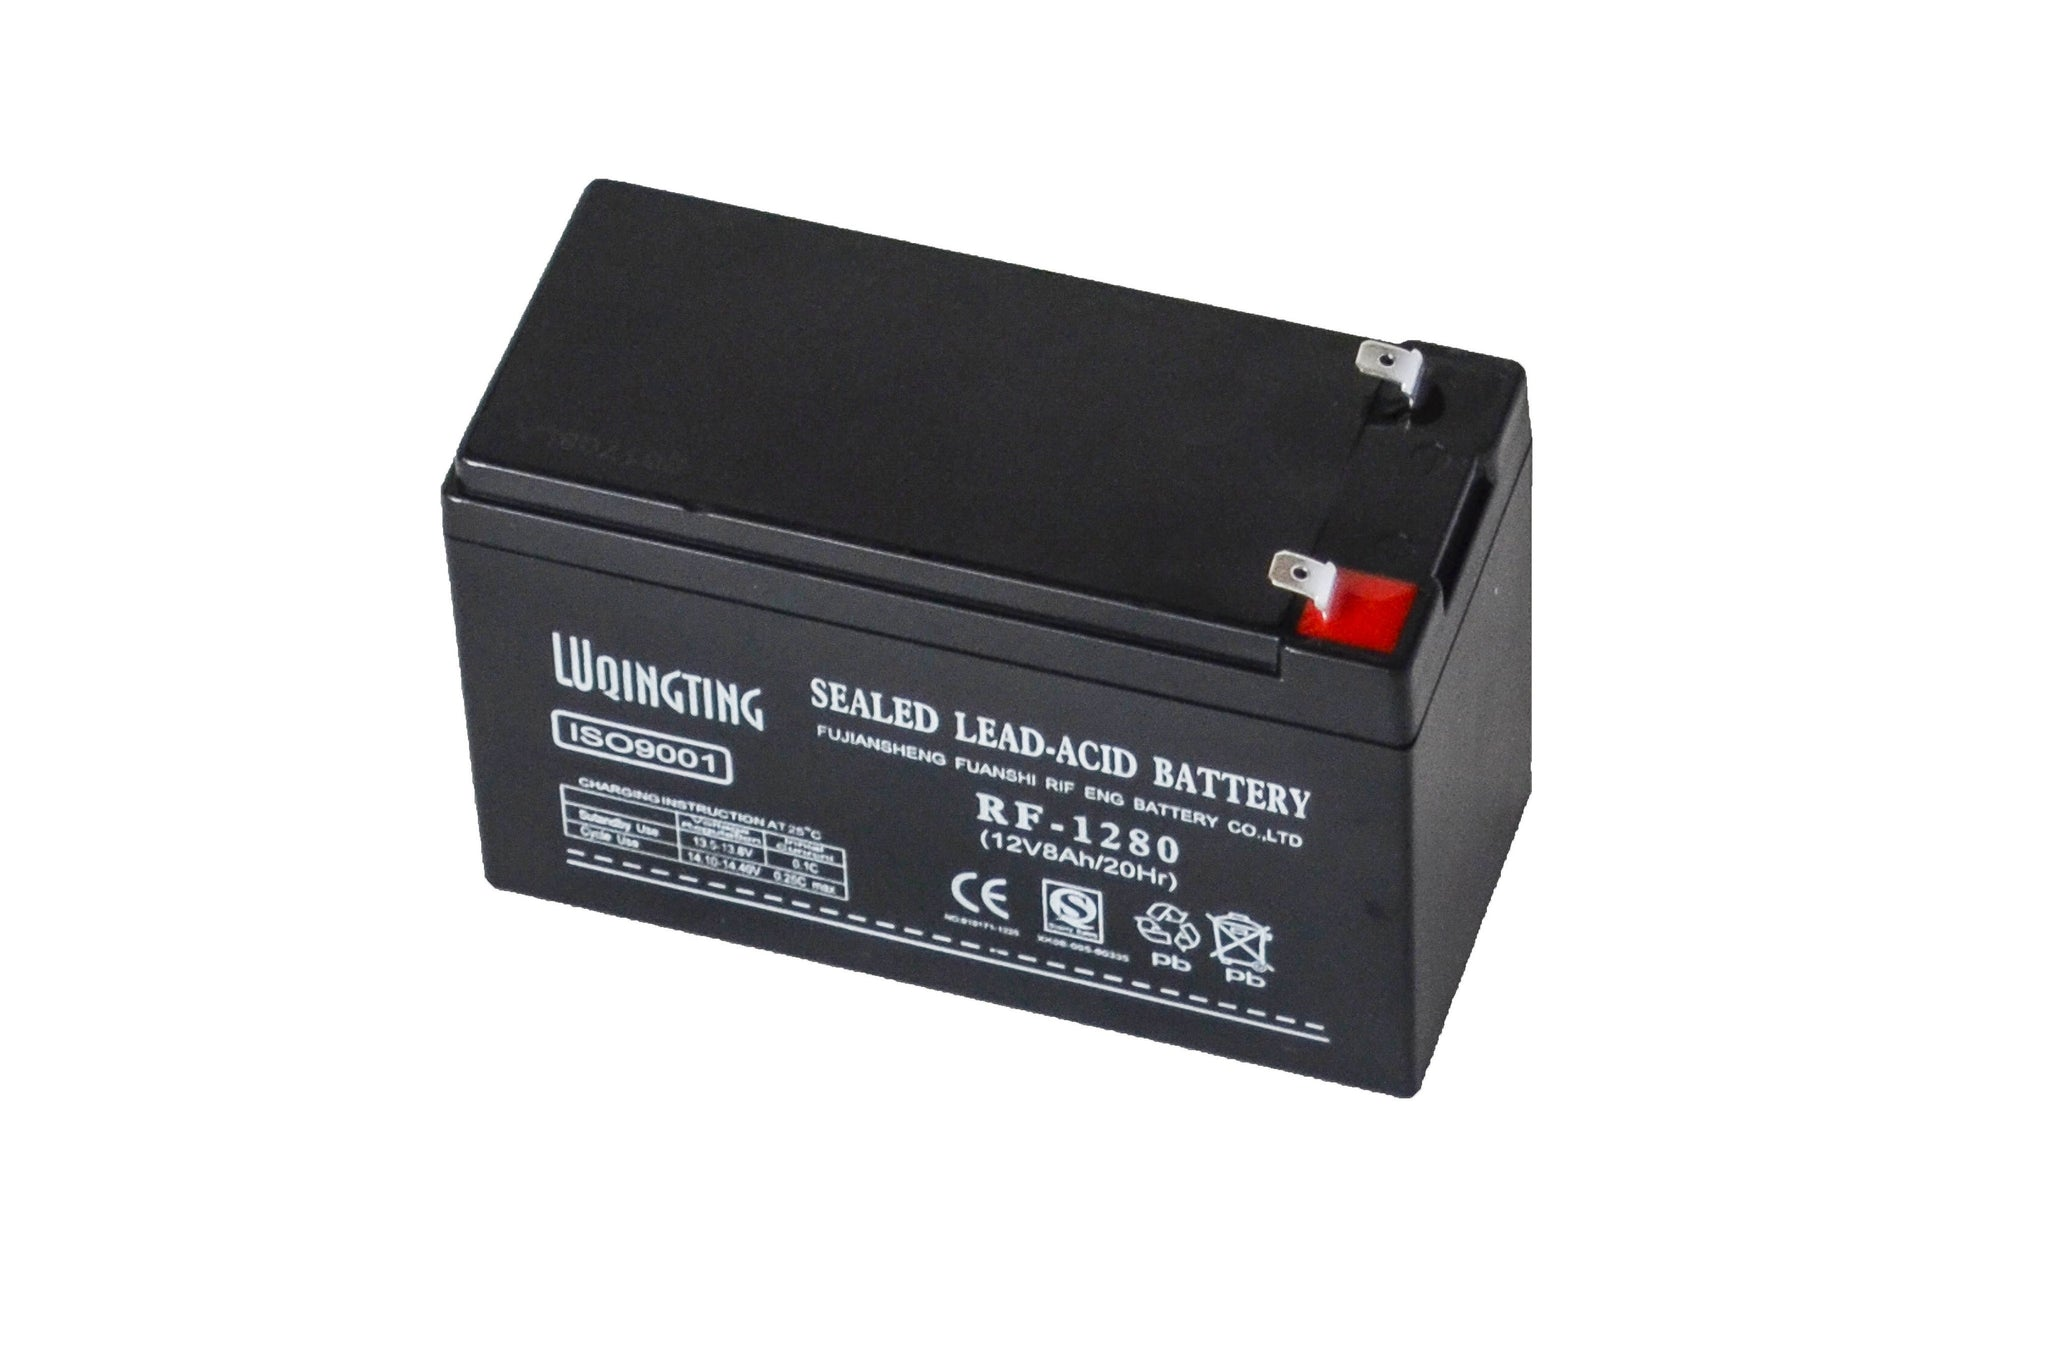 M4 Sealed Lead Acid Battery (12 VOLT 8 AH AGM) For M4 $24.99